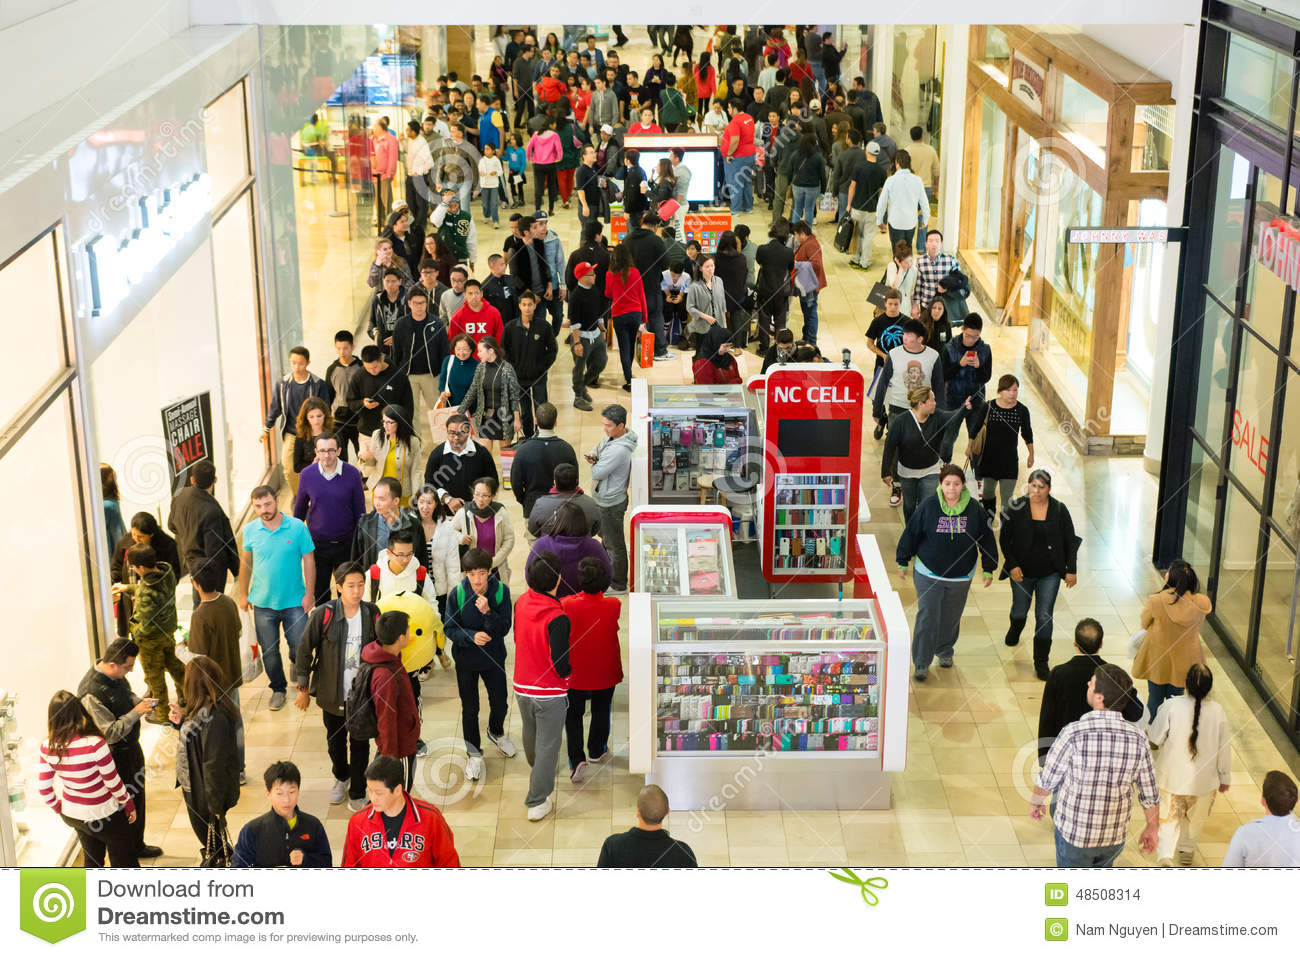 black single men in westfield center Purchase requirement before taxes and after other discounts and must be made in a single  men's levi's exclusions  begin your shopping experience at sears buy.